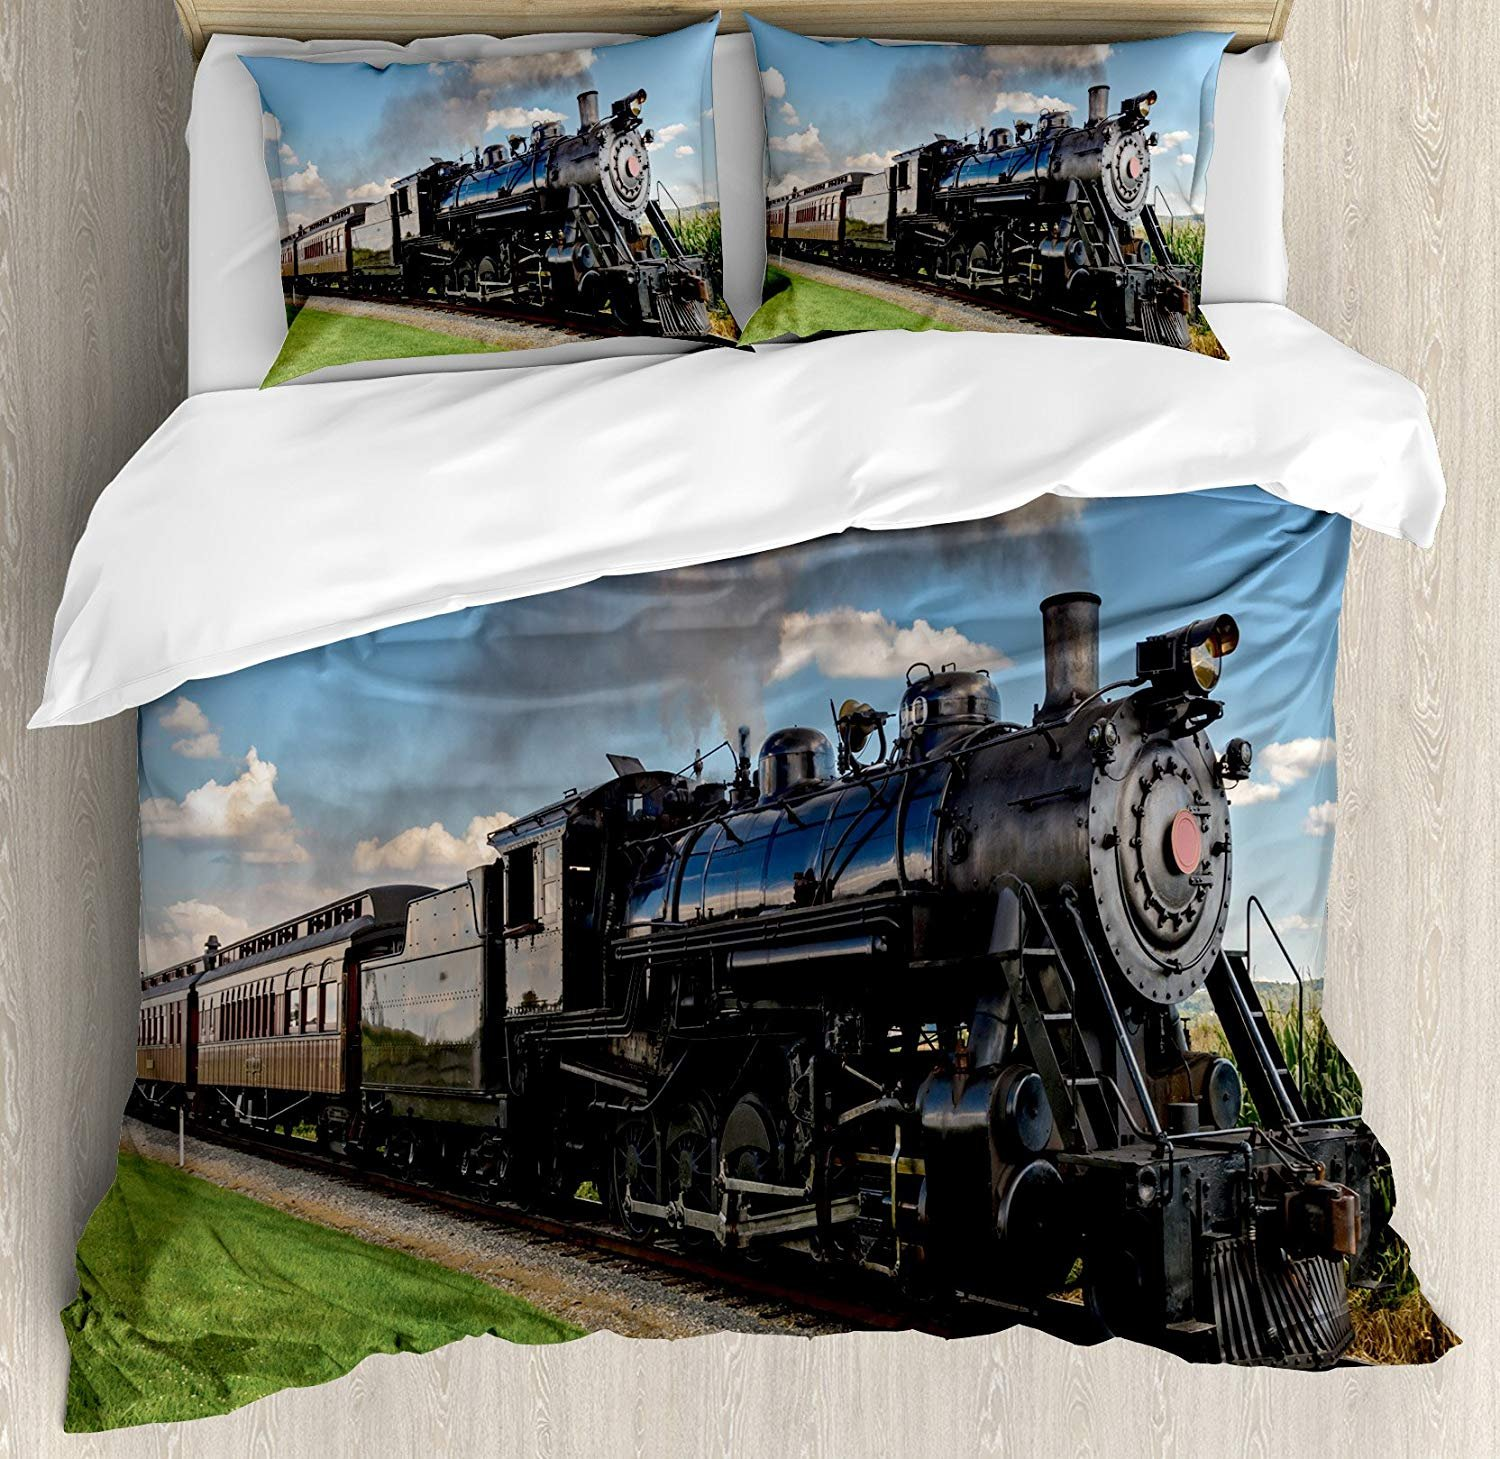 Full Size Steam Engine 3 PCS Duvet Cover Set, Vintage Locomotive in Countryside Scenery Green Grass Puff Train Picture, Bedding Set Quilt Bedspread for Children/Teens/Adults/Kids, Blue Green Black